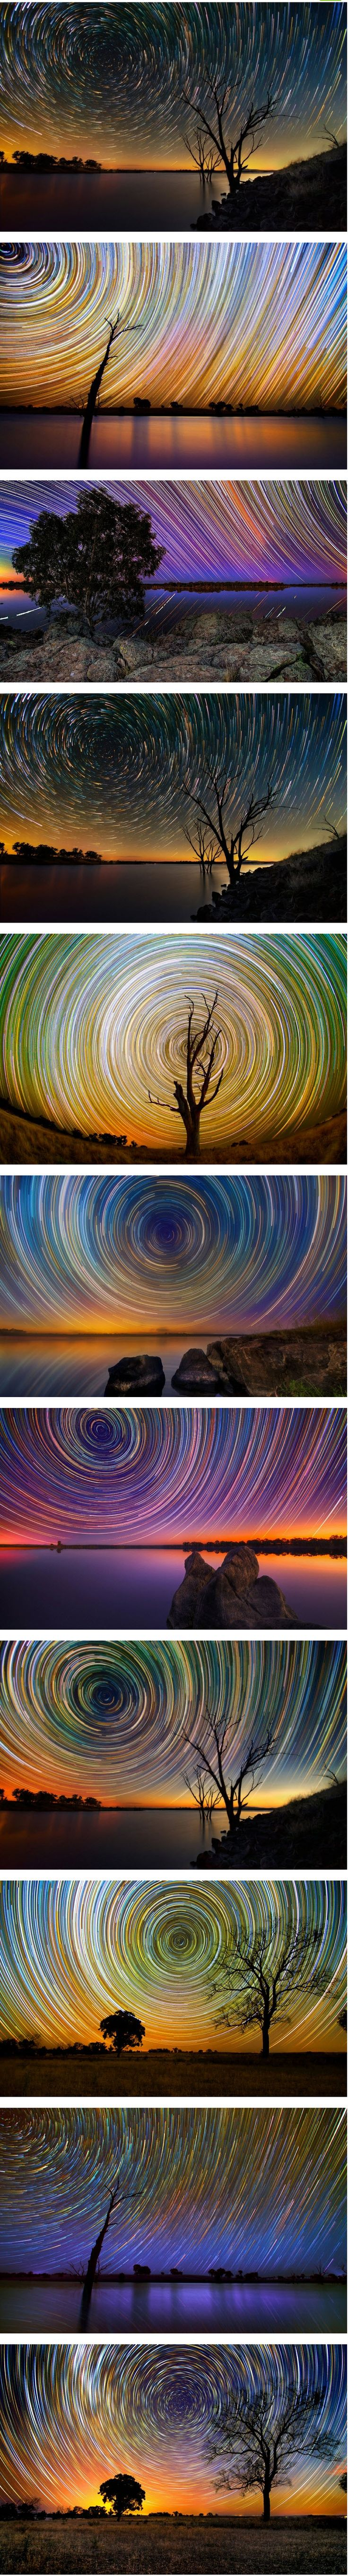 Star trail time lapse photos. Set up your camera in a safe and sturdy place and take pics every couple of minutes. Make a composite in Photoshop of Lightroom and you will have your very own star trails! Hope to take some like this once I have a tripod.